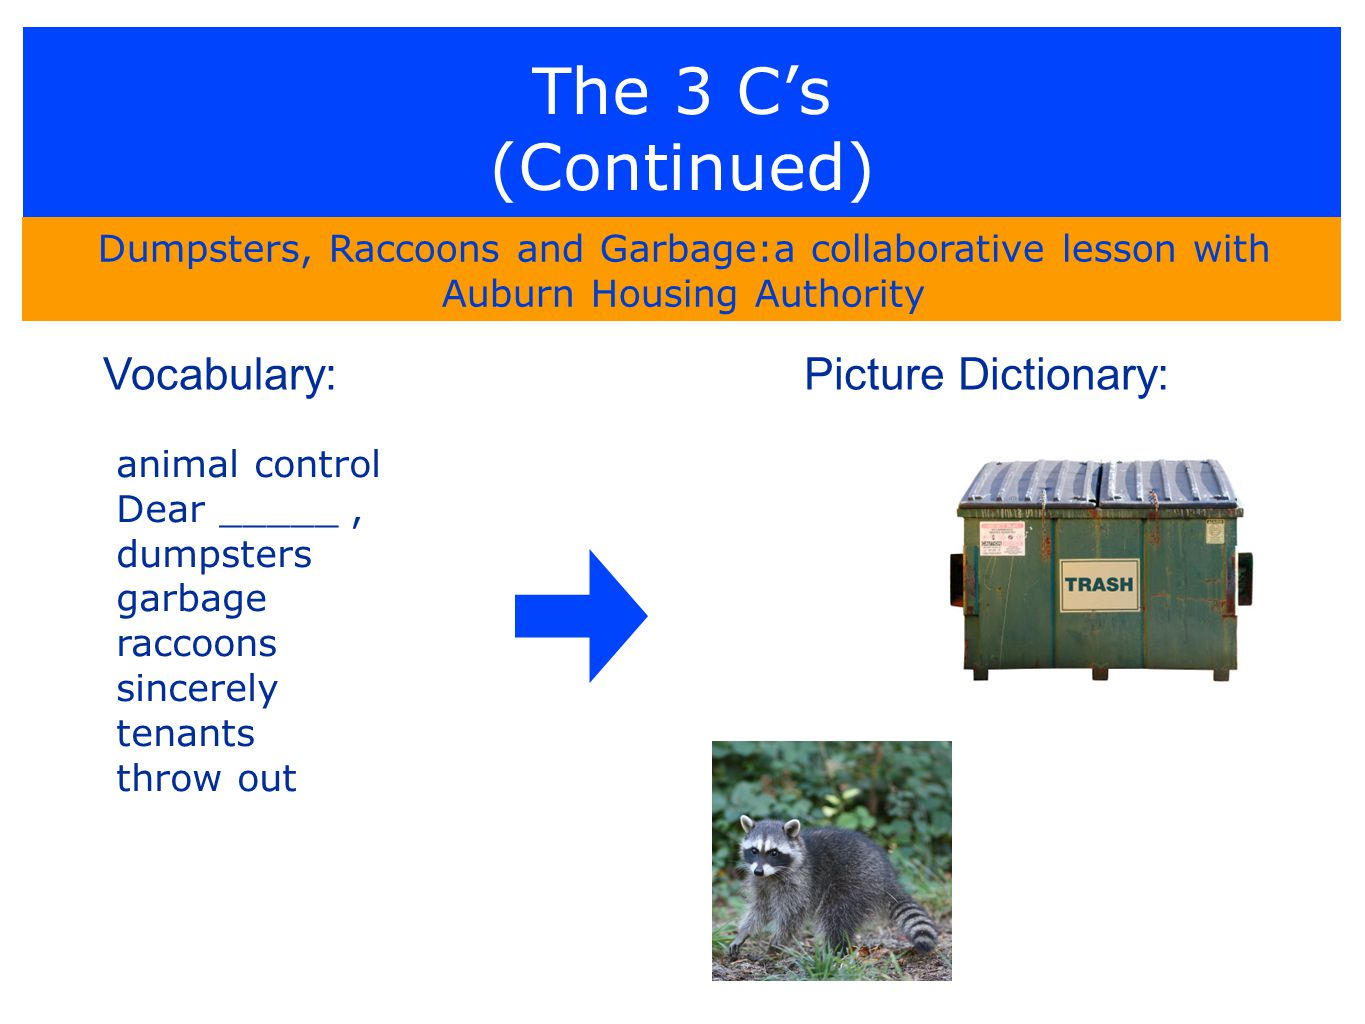 The 3 C's (Continued) Dumpsters, Raccoons and Garbage:a collaborative lesson with Auburn Housing Authority animal control Dear _____, dumpsters garbage raccoons sincerely tenants throw out Vocabulary:Picture Dictionary: